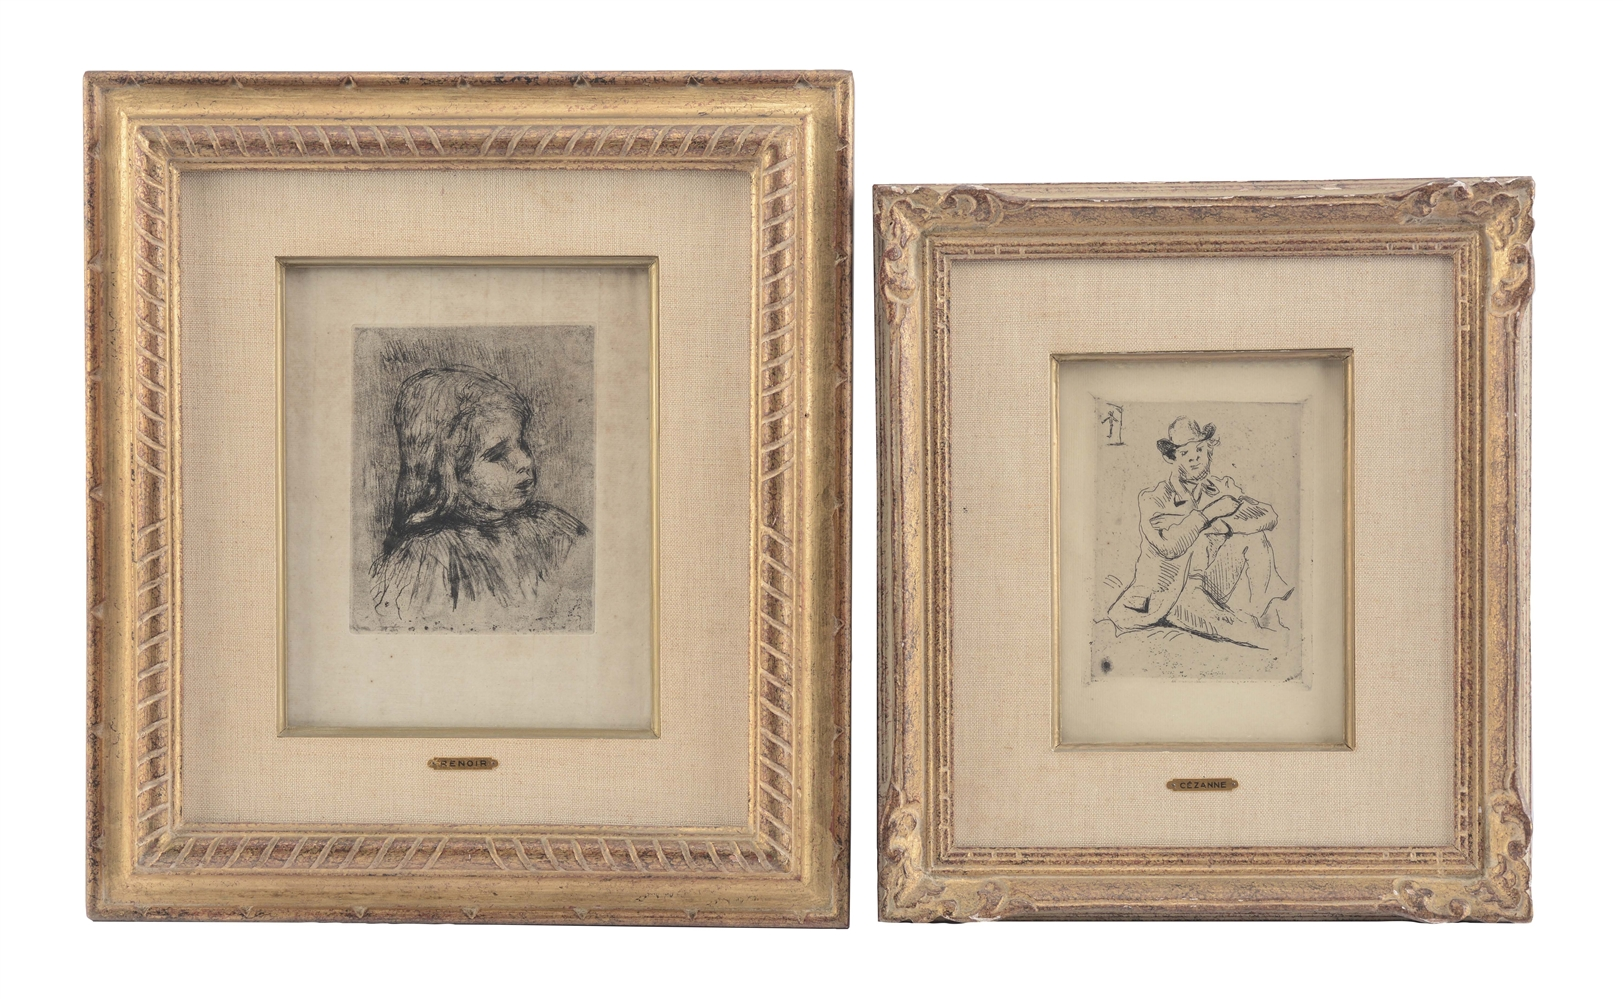 Lot Of 2: Etchings by Renoir and Cezanne.